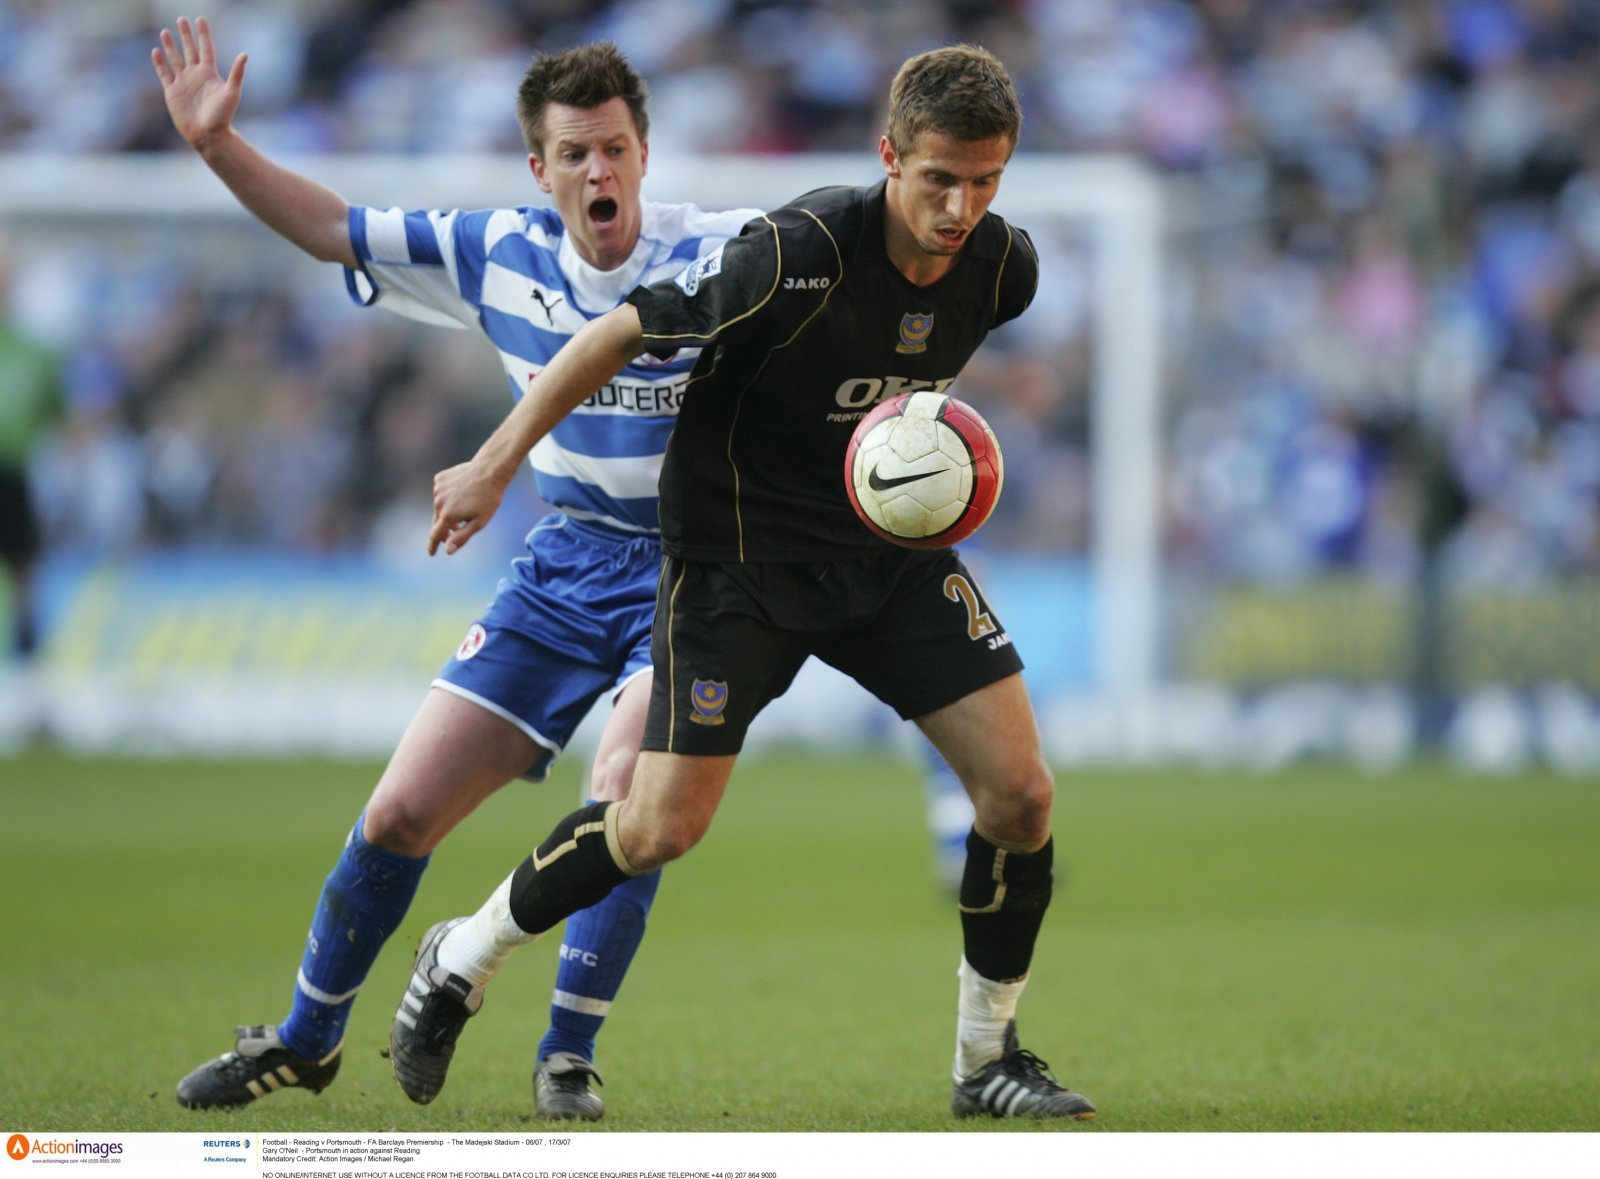 Portsmouth: Many fans made an offer to Gary O'Neil